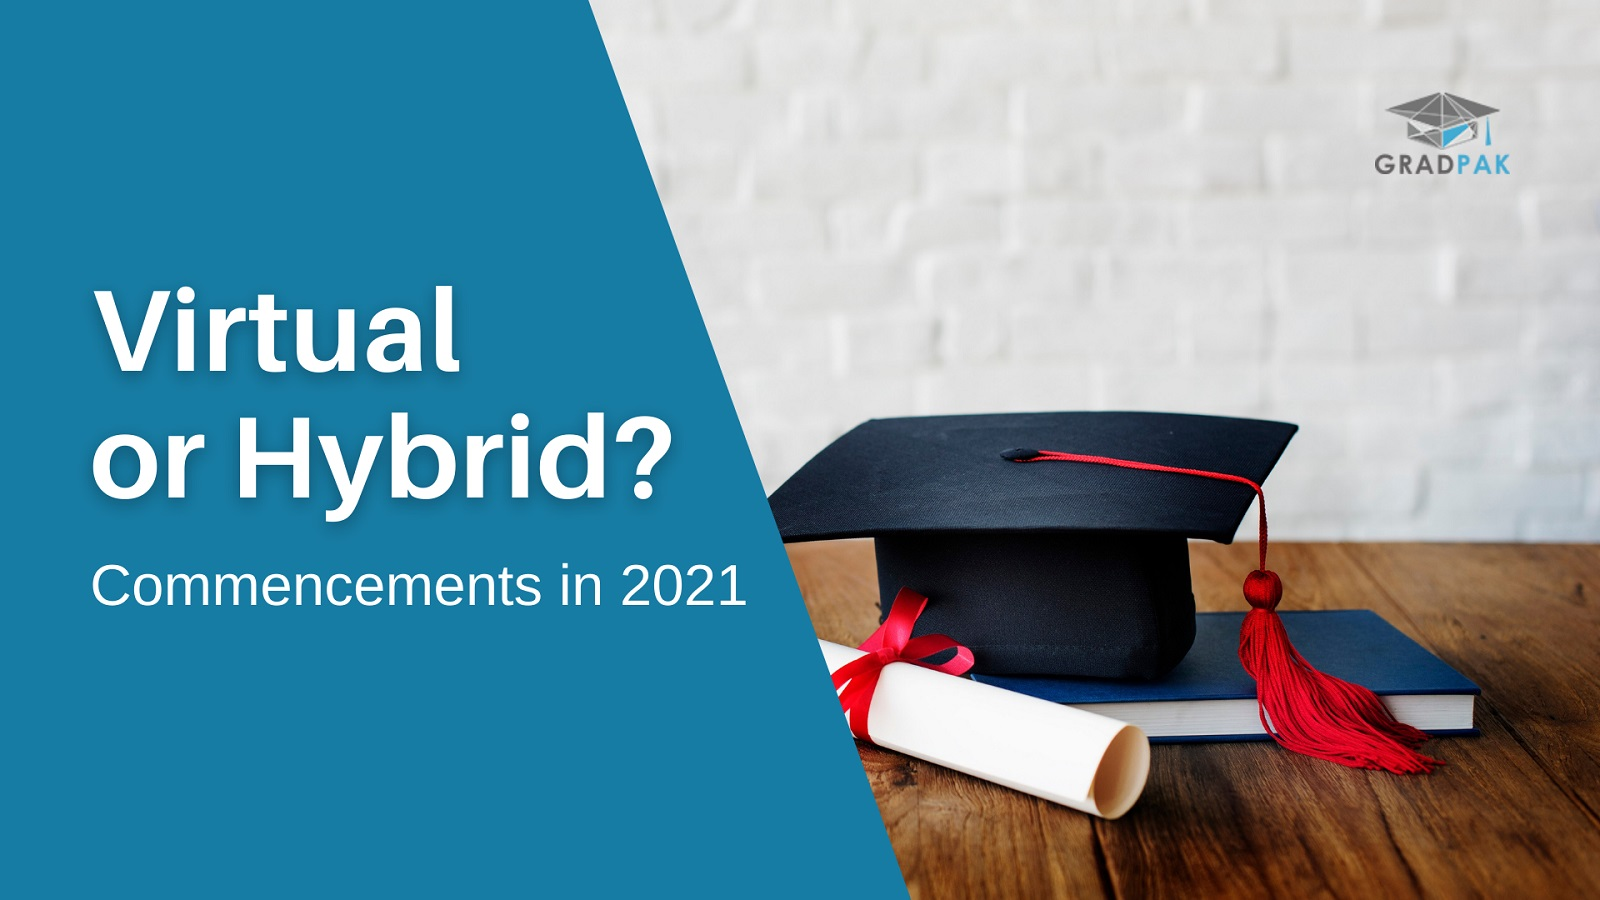 Virtual graduation or hybrid graduation in 2021 - GradPak